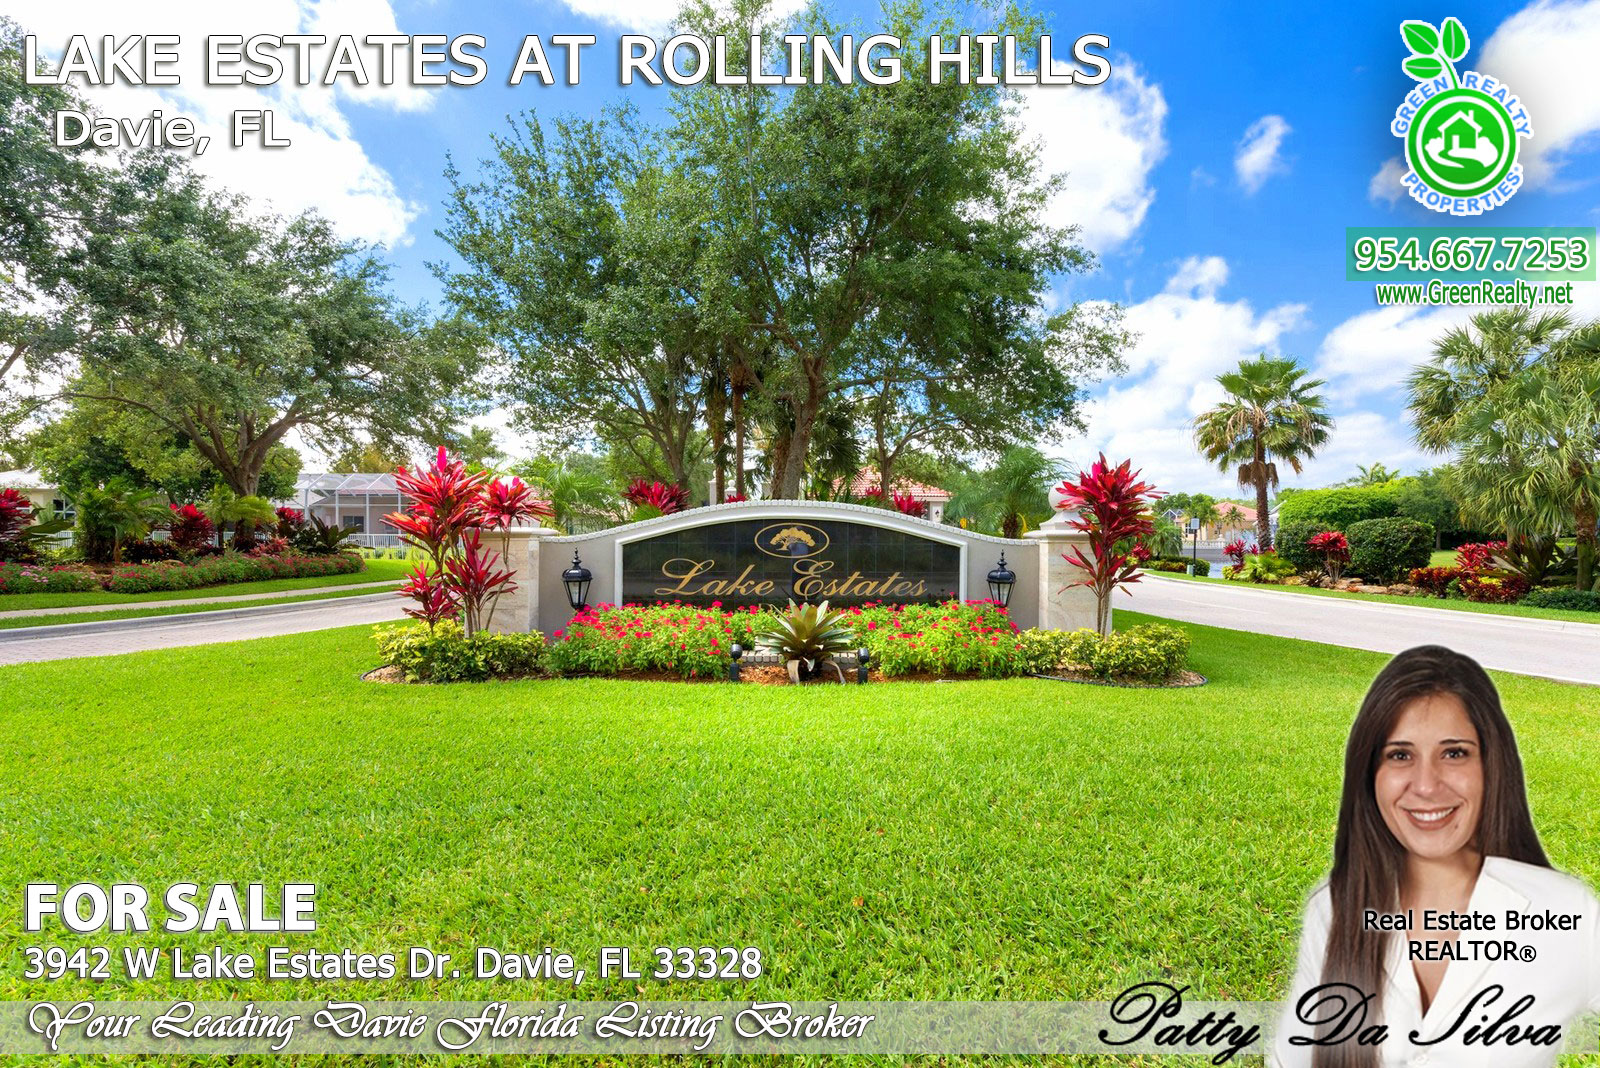 davie-florida-listing-broker-patty-da-silva-lake-estates